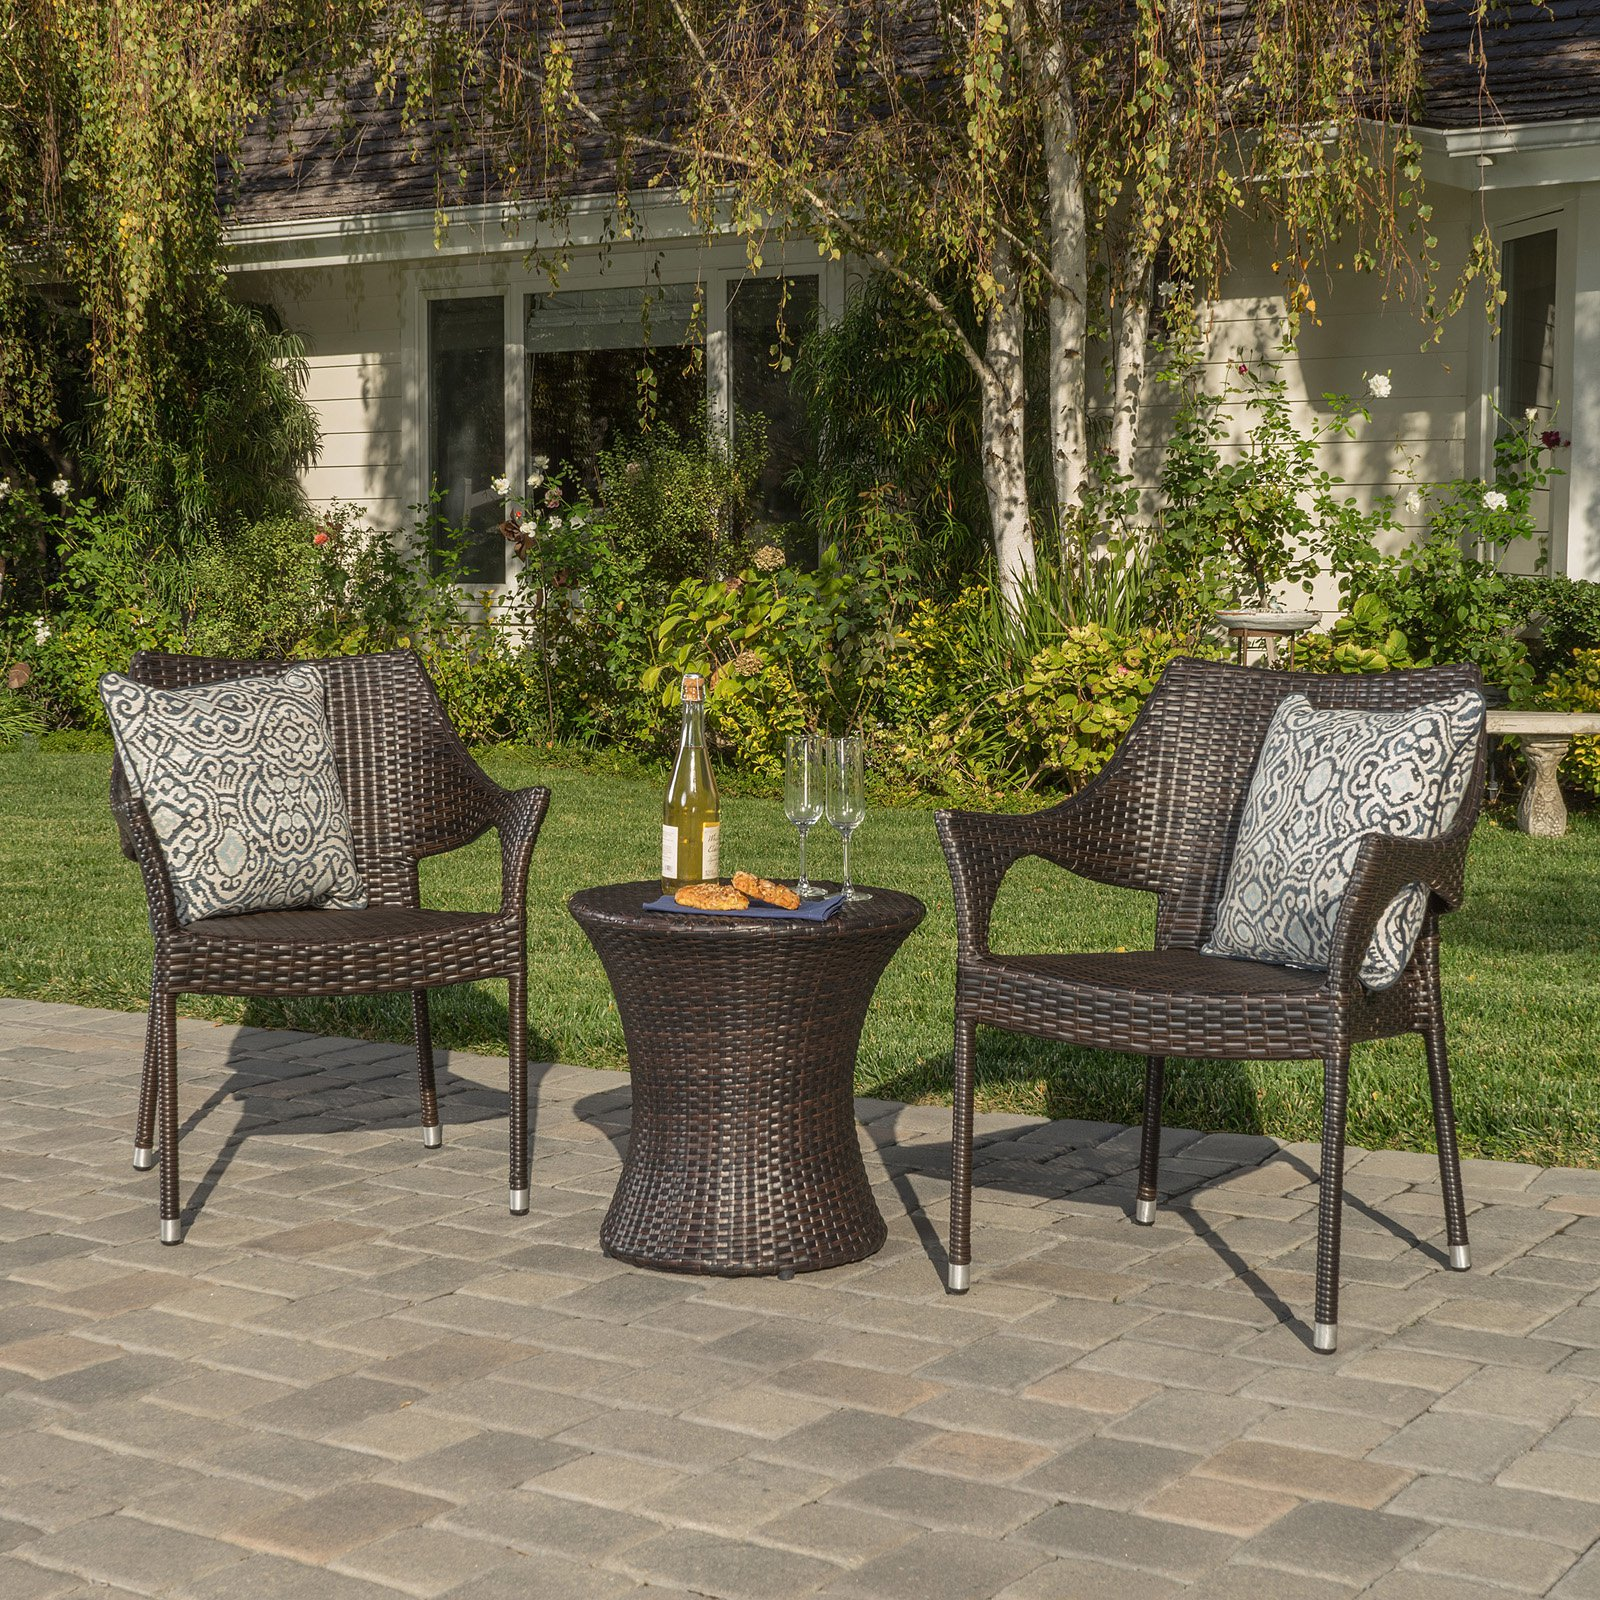 Garuda Wicker 3 Piece Patio Chat Set